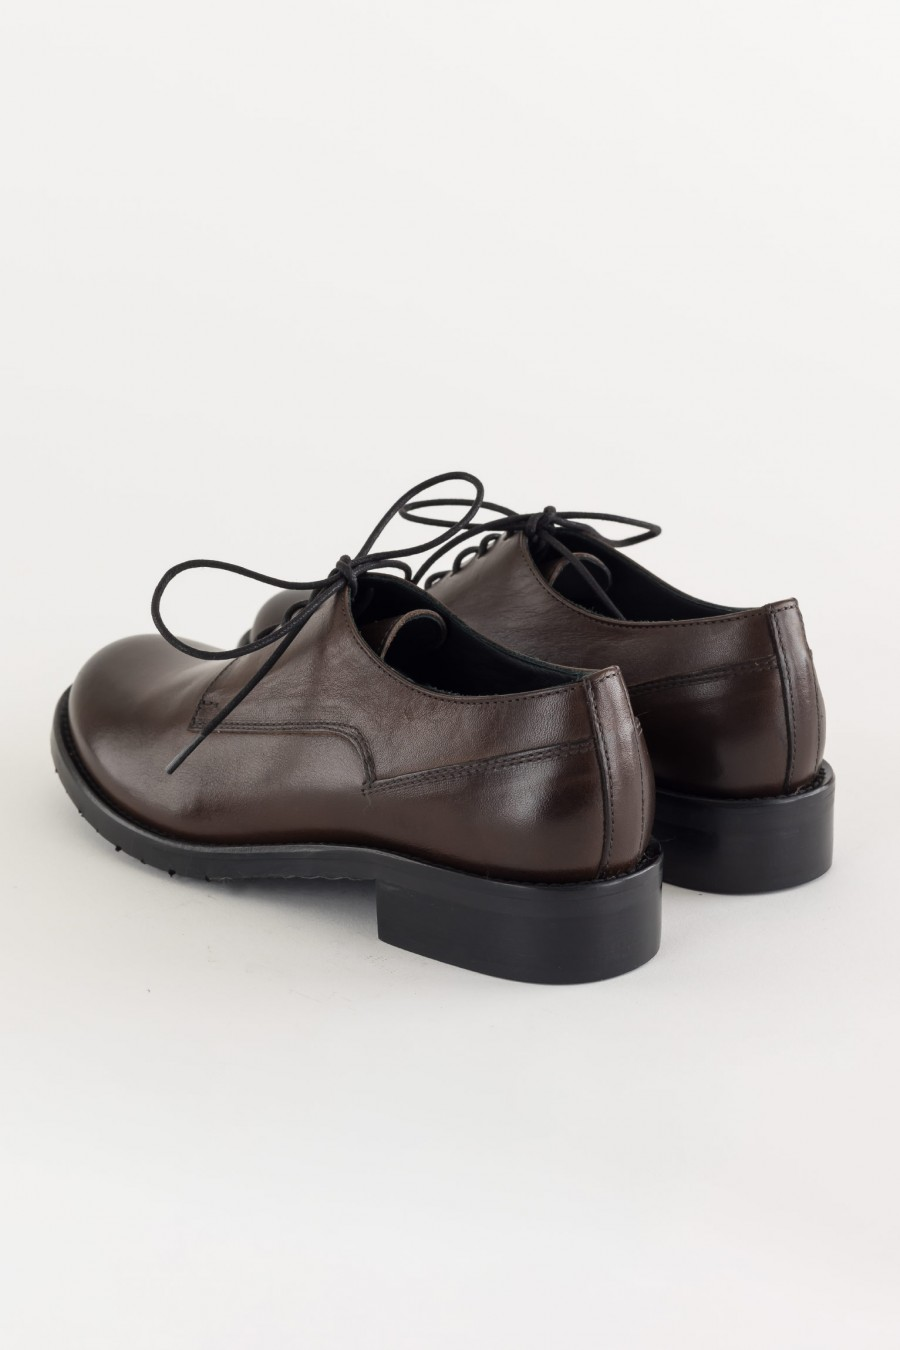 Dark brown lace ups